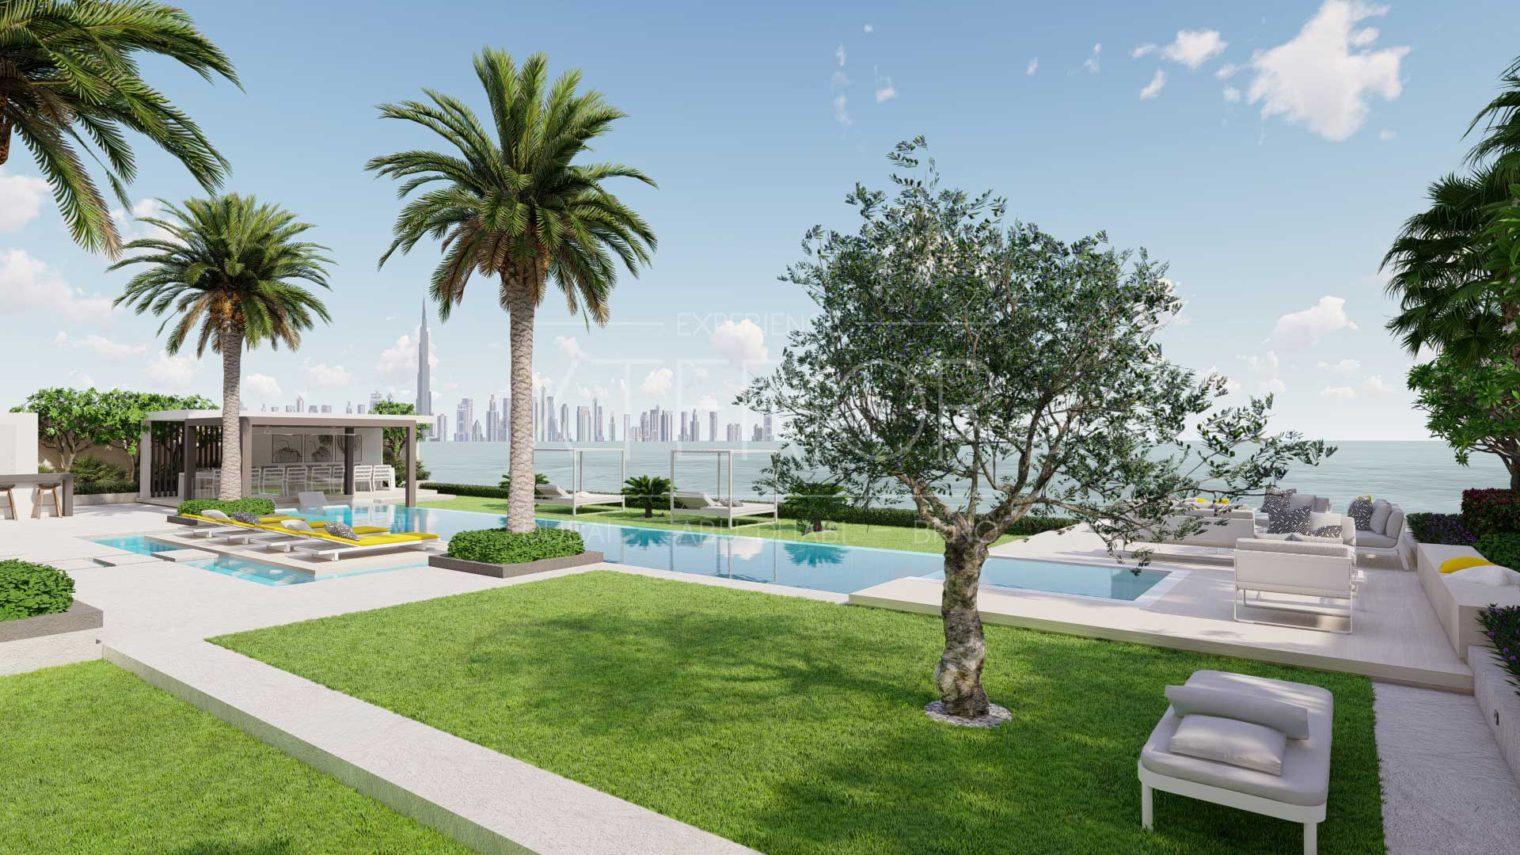 BVLGARI RESIDENCES Outdoor-Pool-and-Landscape-Design